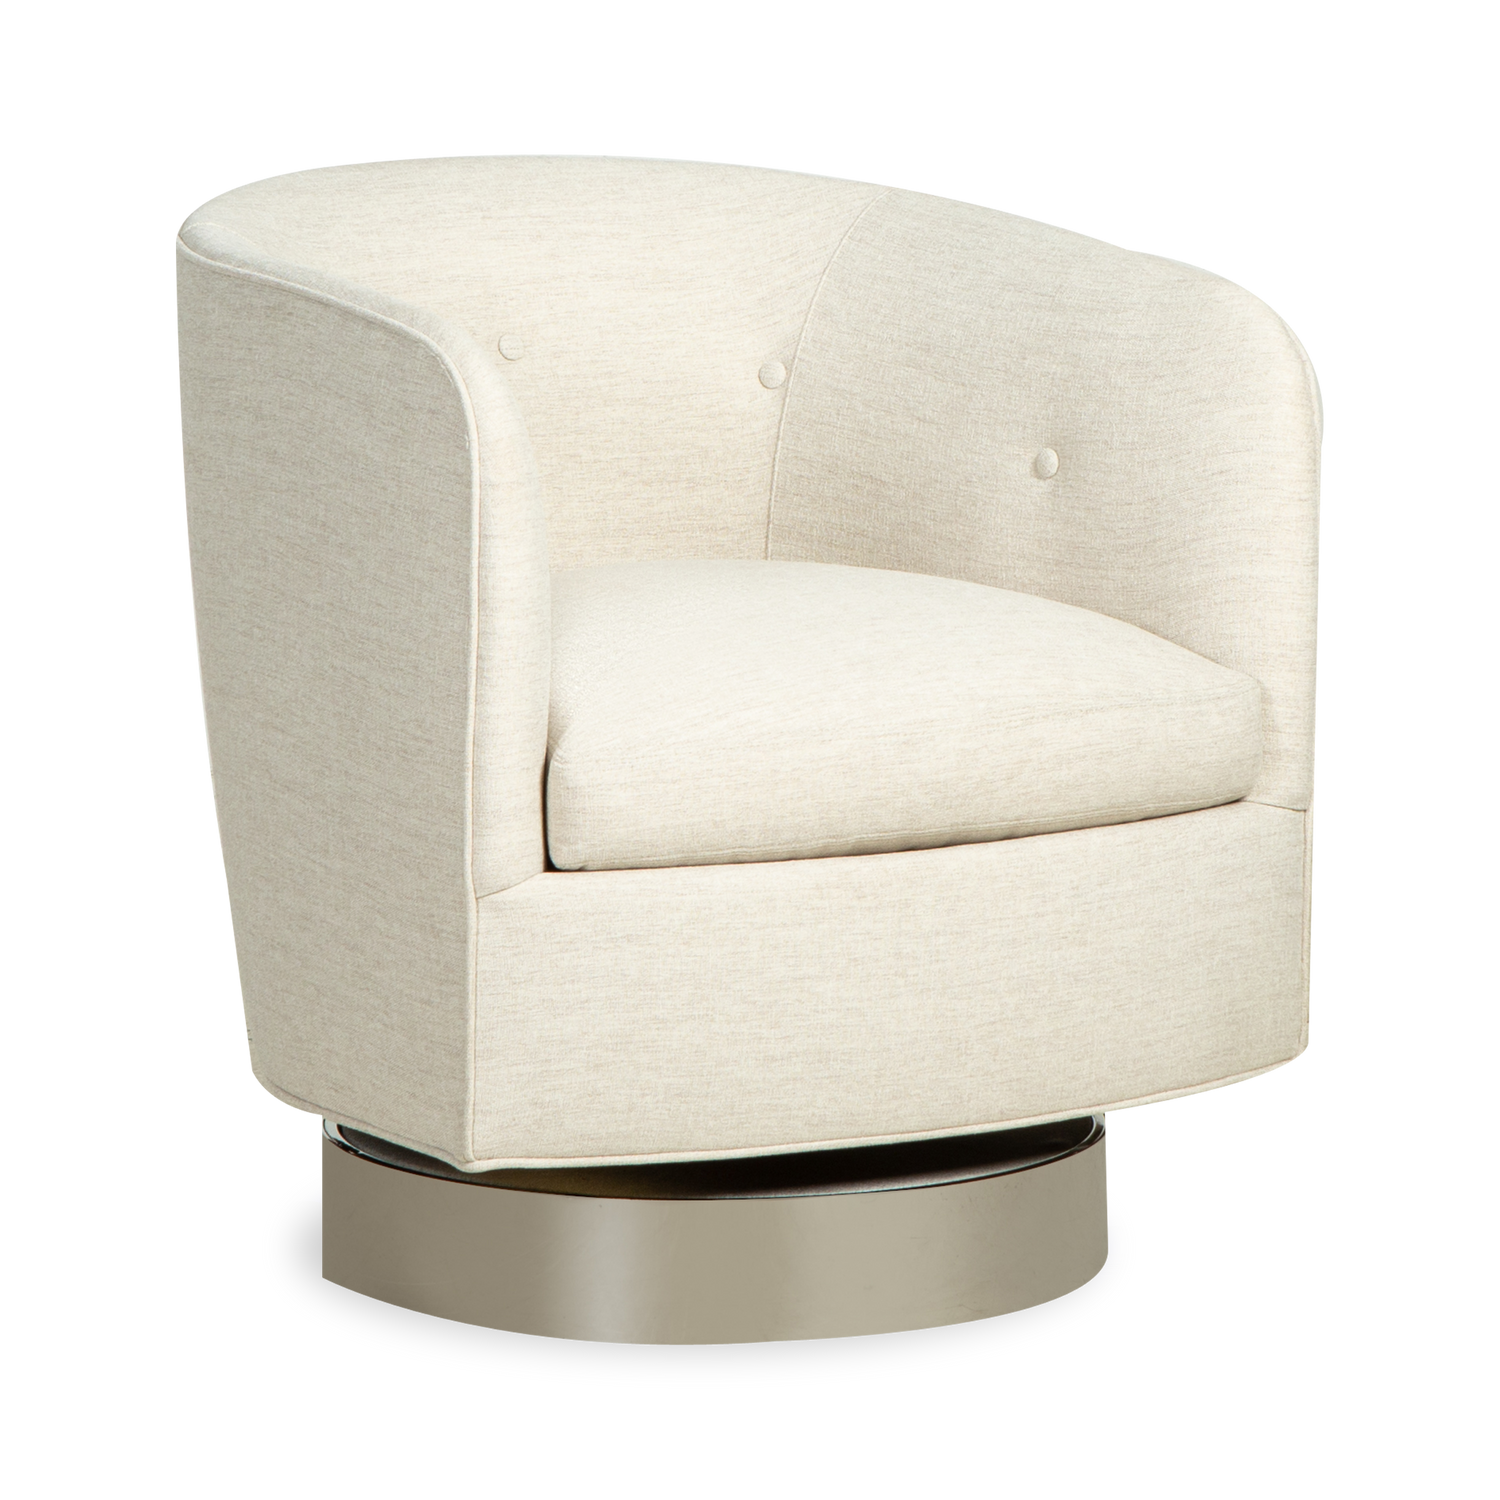 Roxy-O Swivel Chair